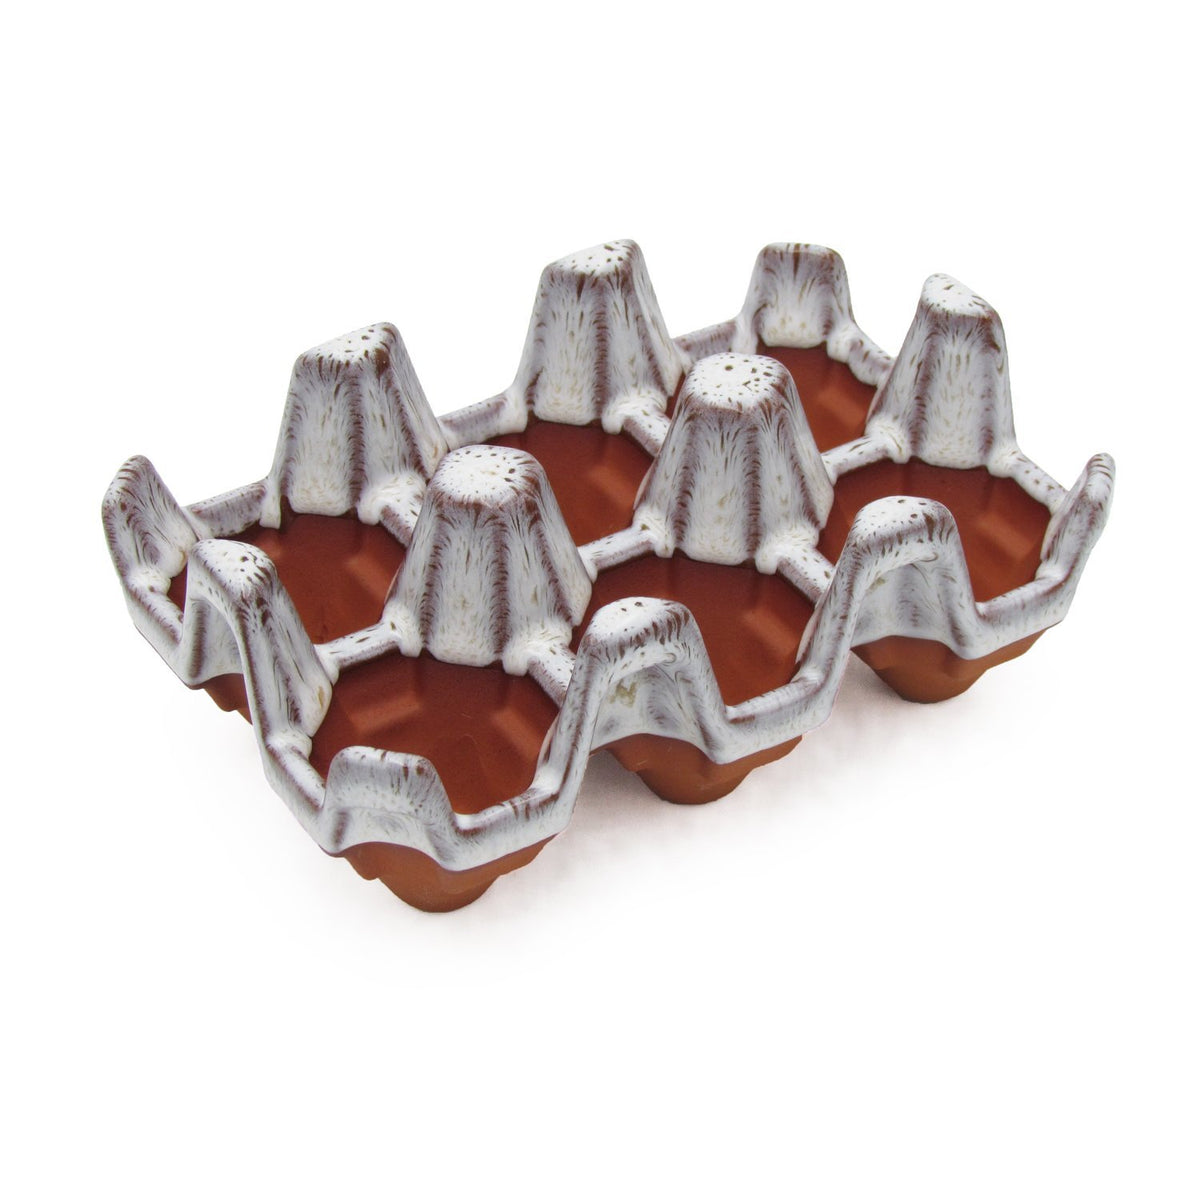 Terracotta 6 egg holder - Oyster Glaze